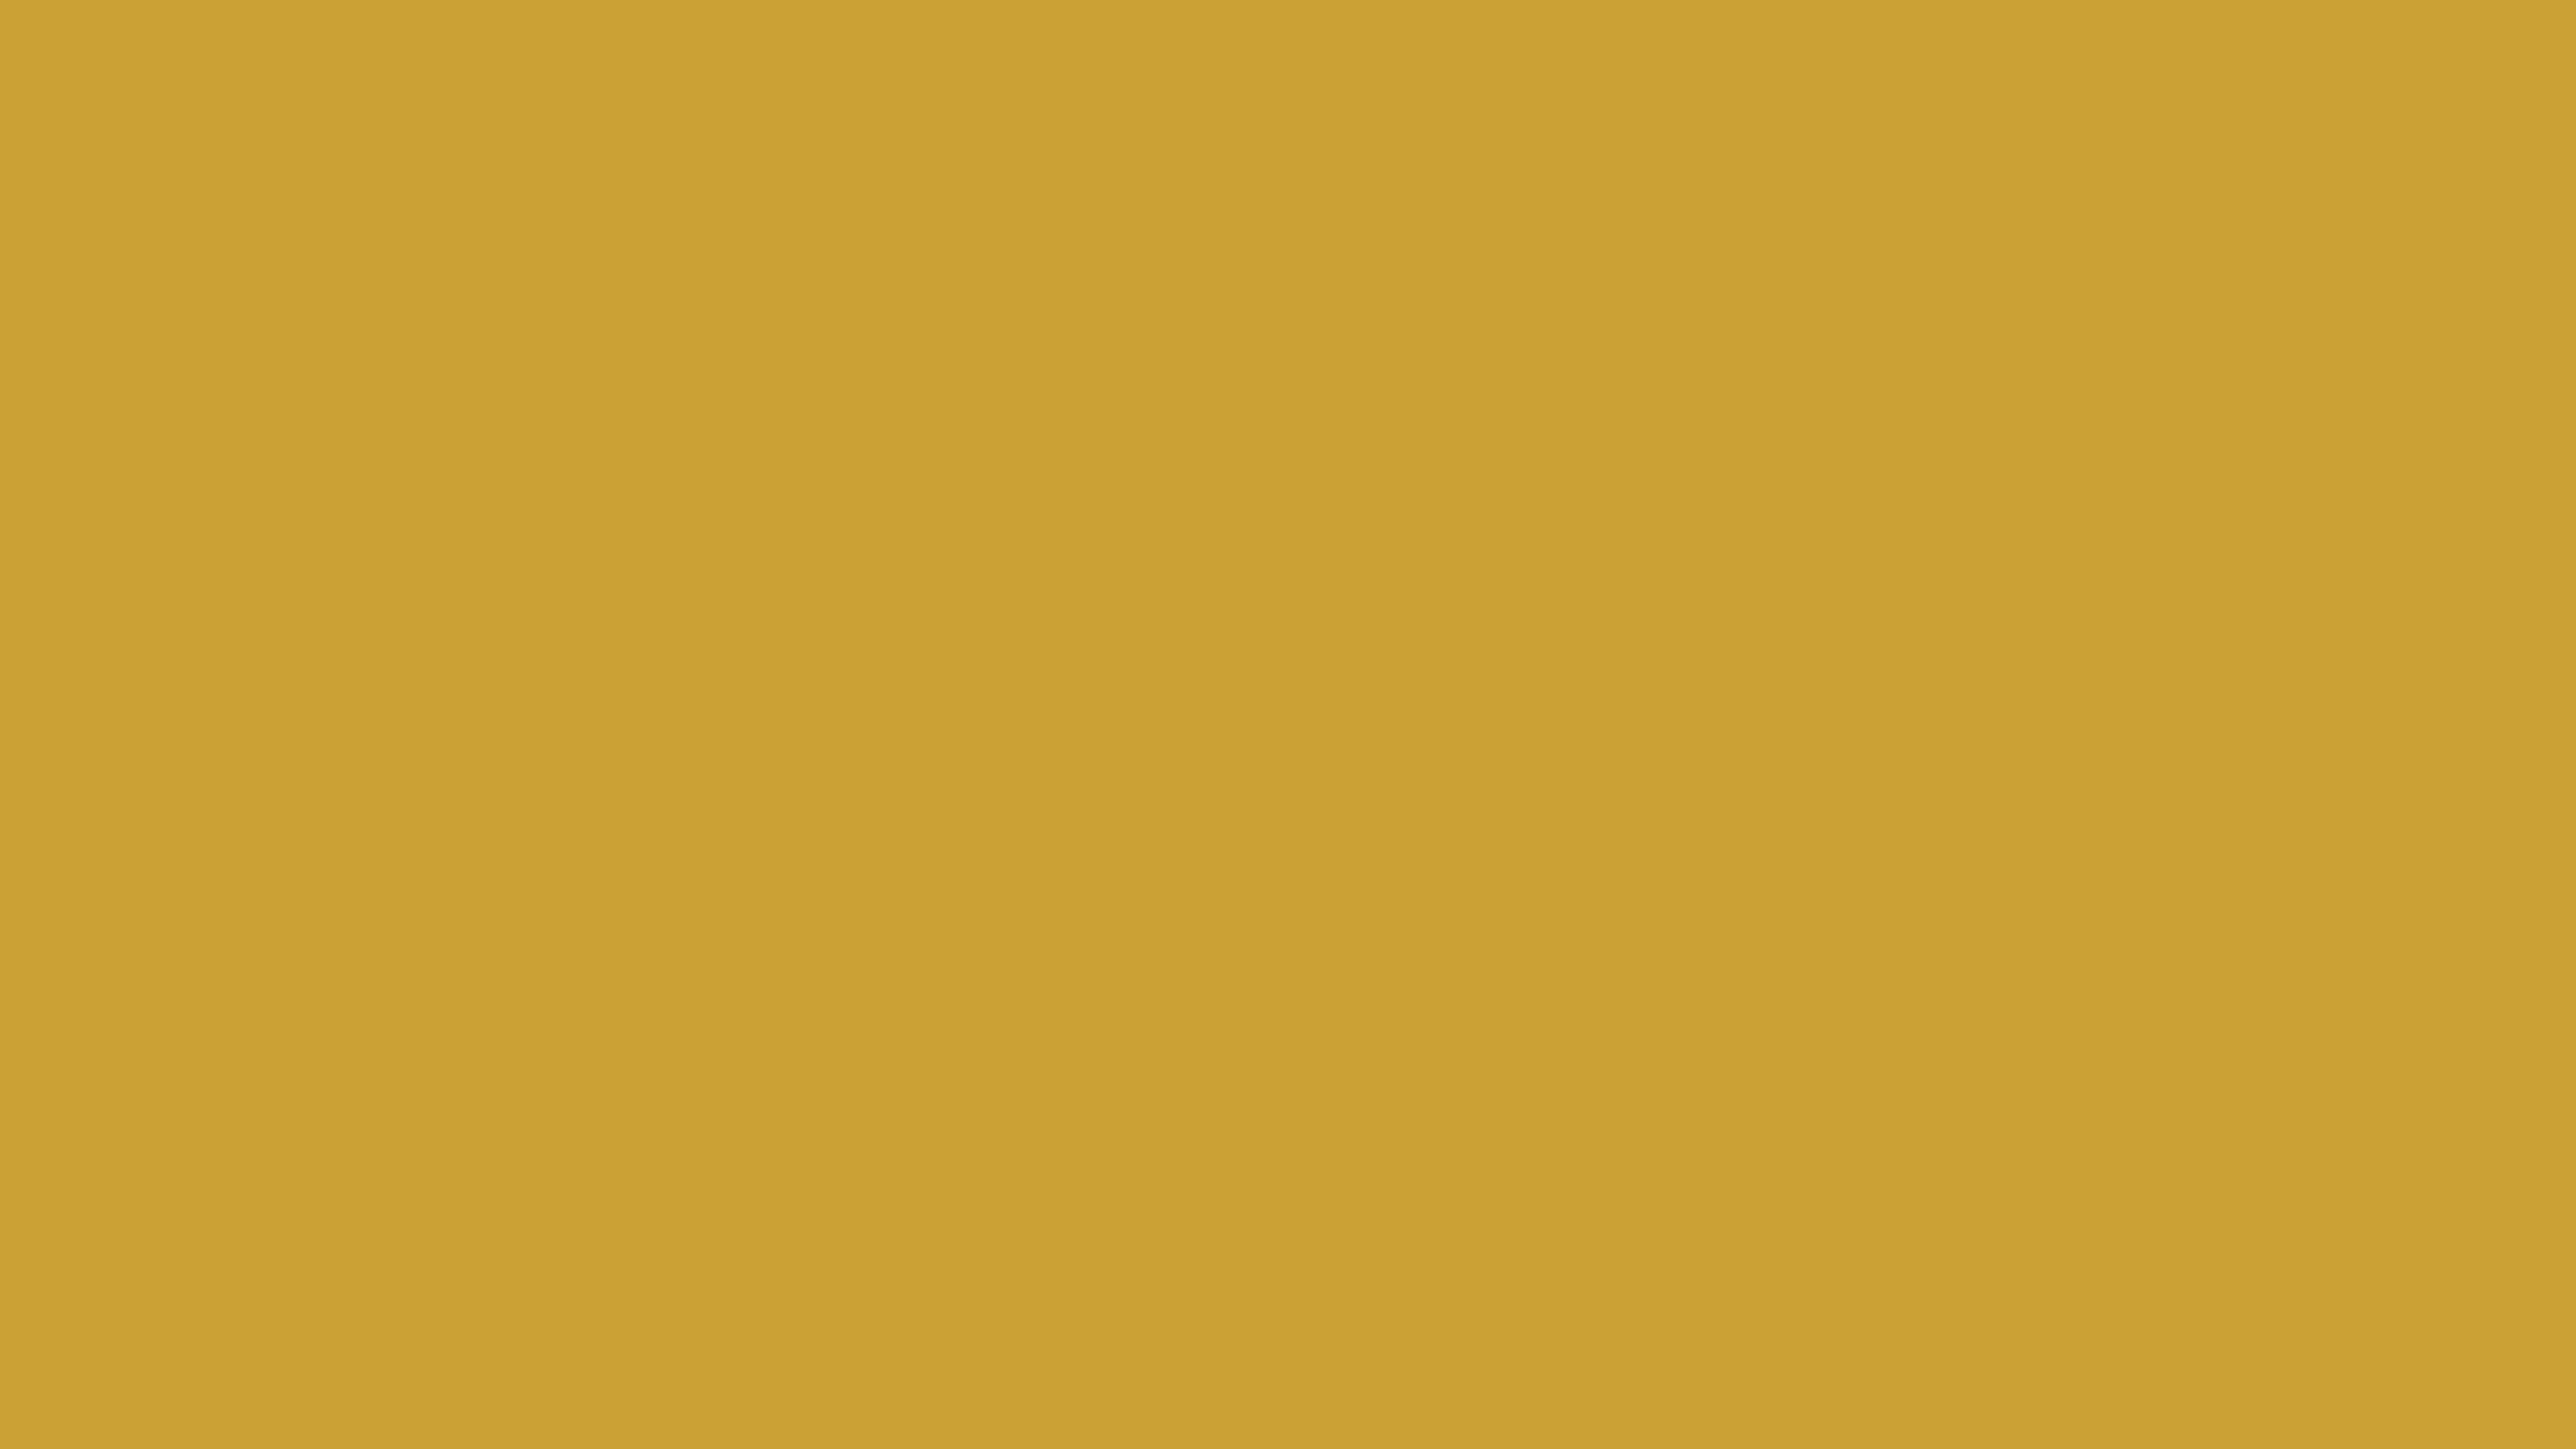 4096x2304 Satin Sheen Gold Solid Color Background